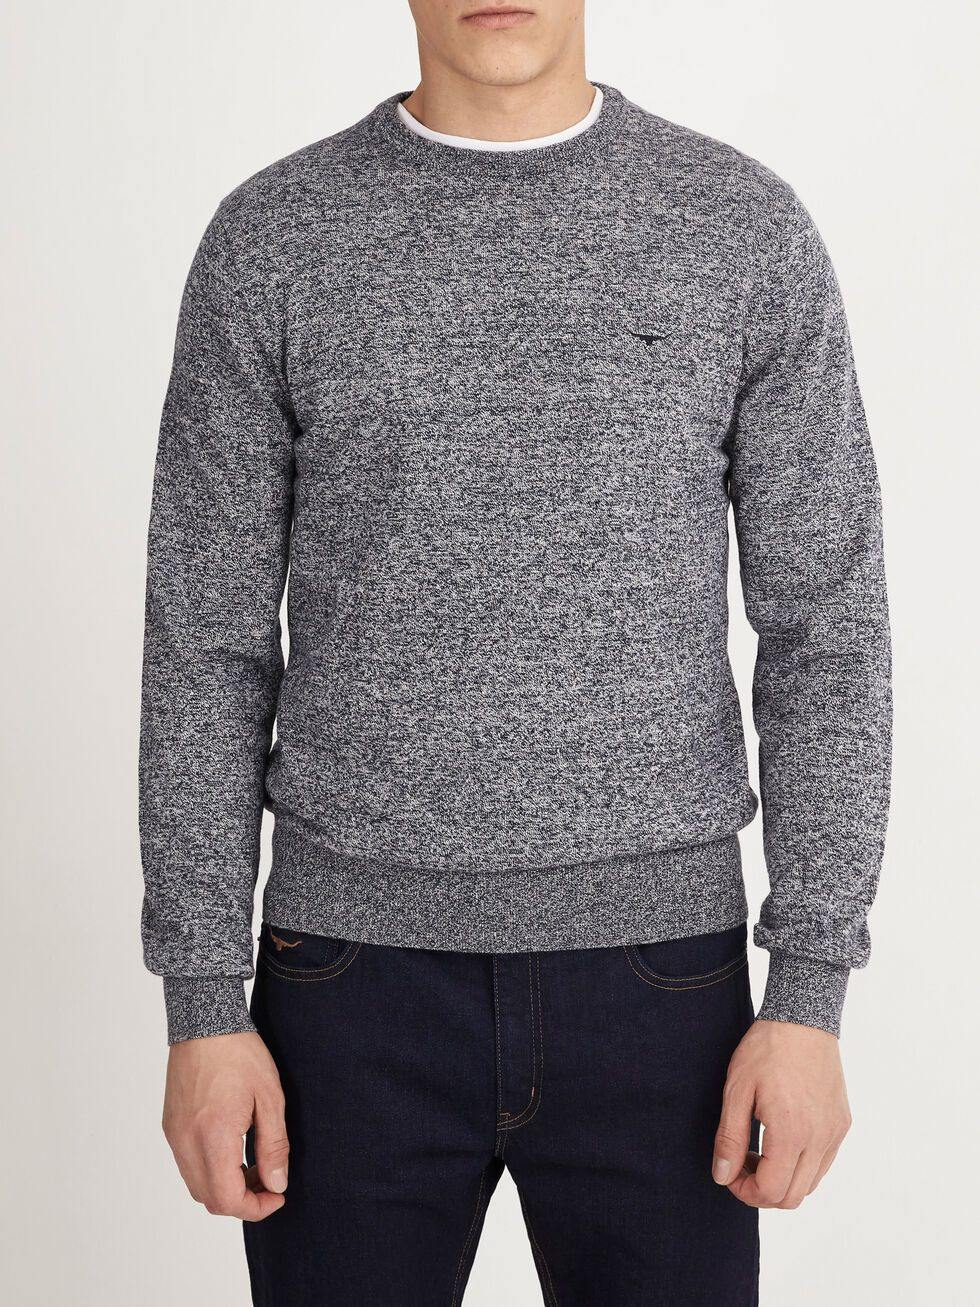 RM Williams Howe Sweater available at My Harley and Rose